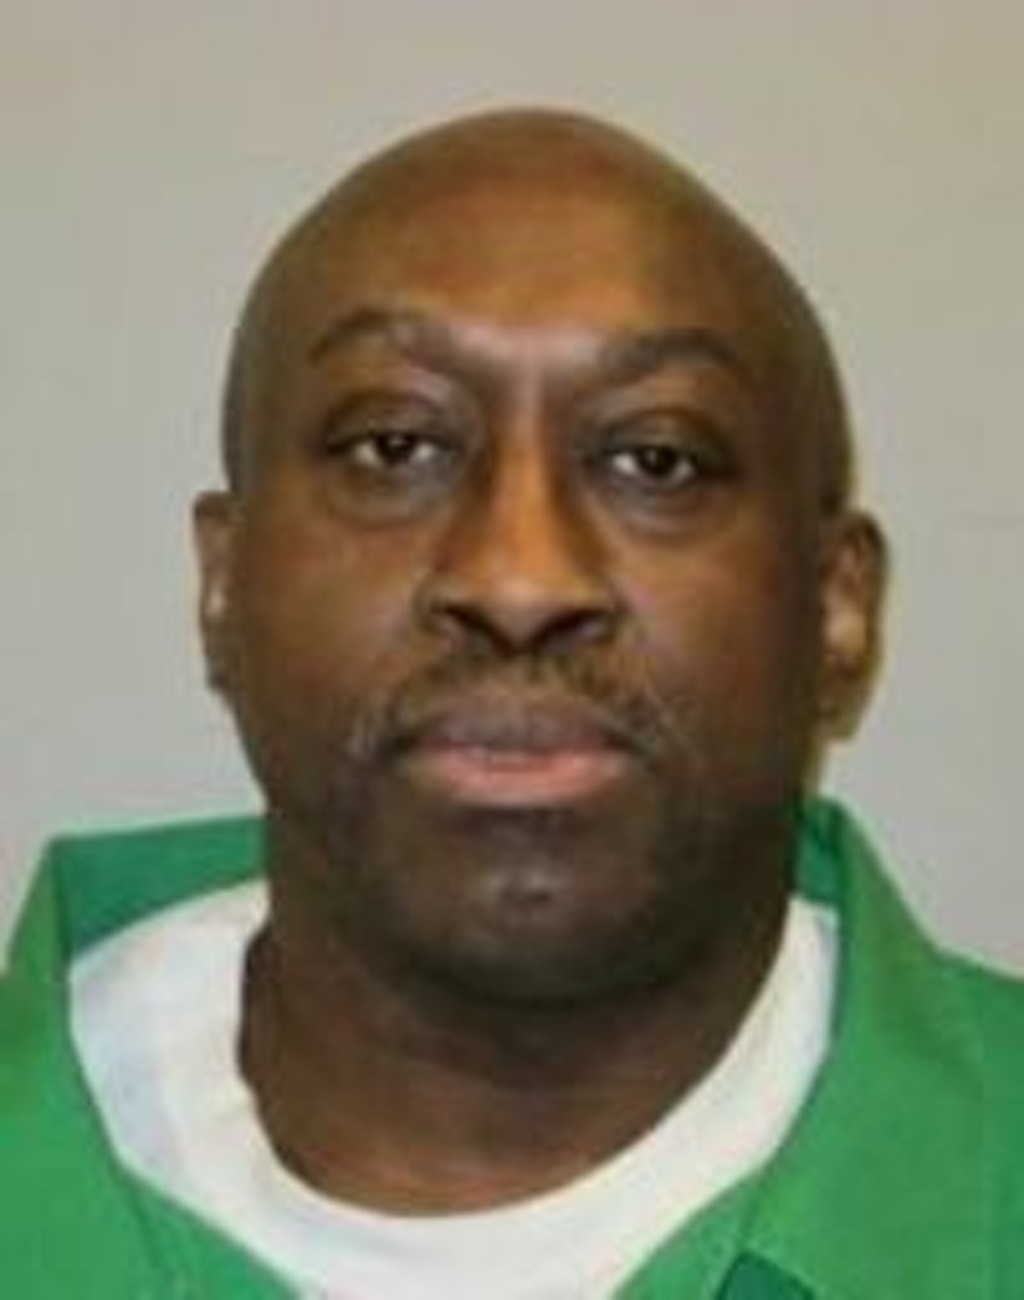 Taken Off Death Row in 2014, Intellectually Disabled South Carolina Man Now Gets New Trial